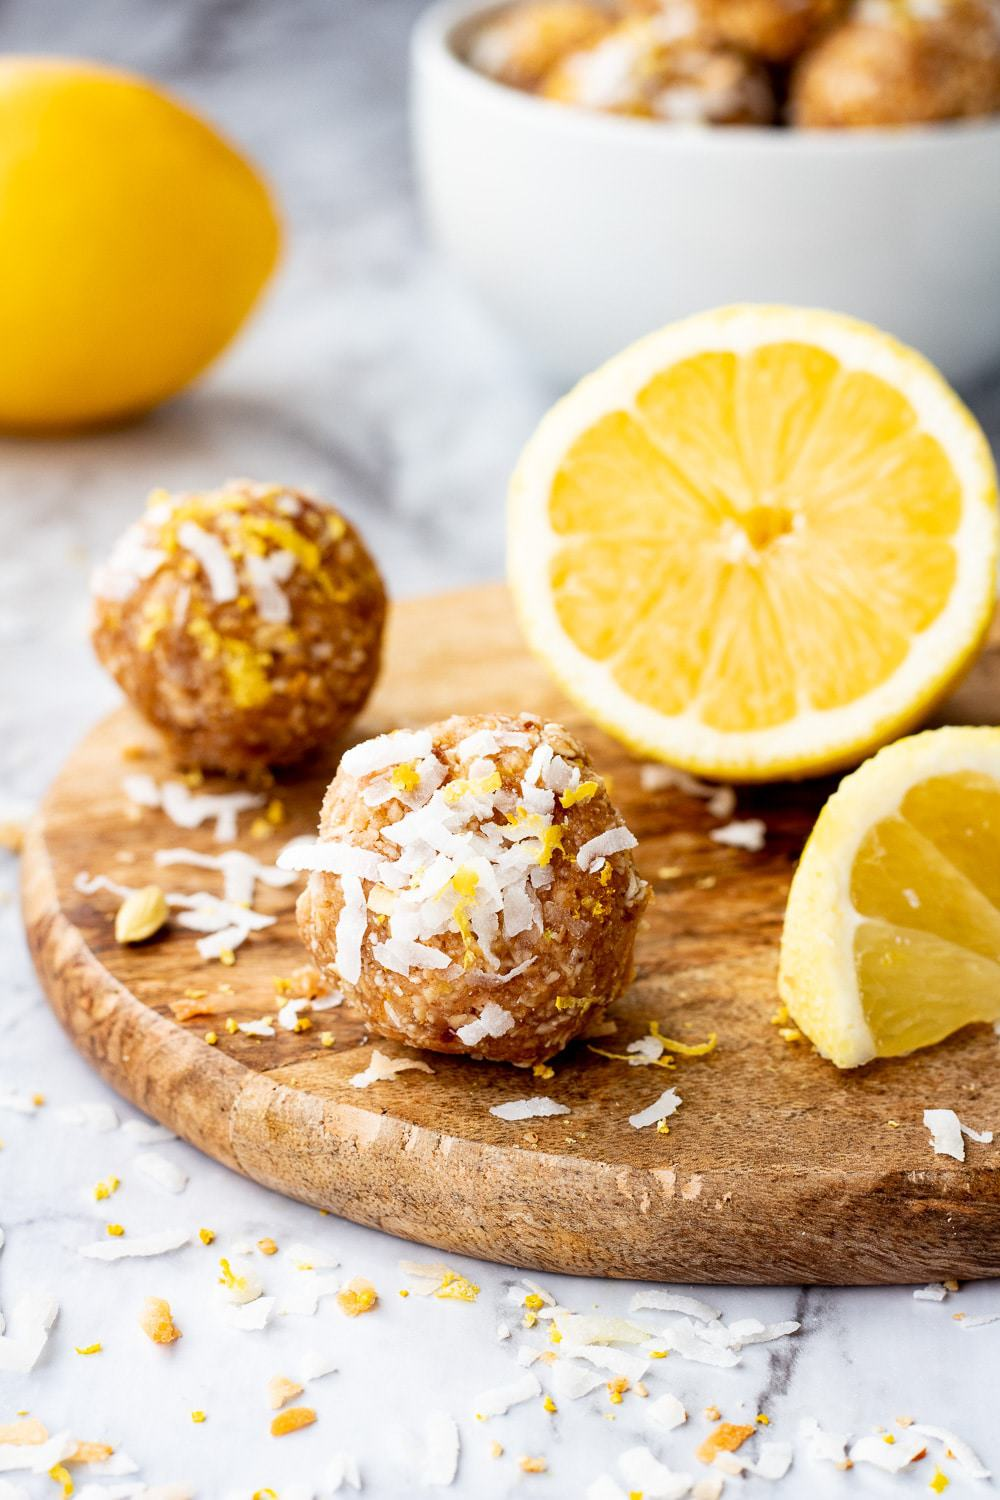 Lemon coconut protein ball on wood board with sliced lemon on marble backdrop.